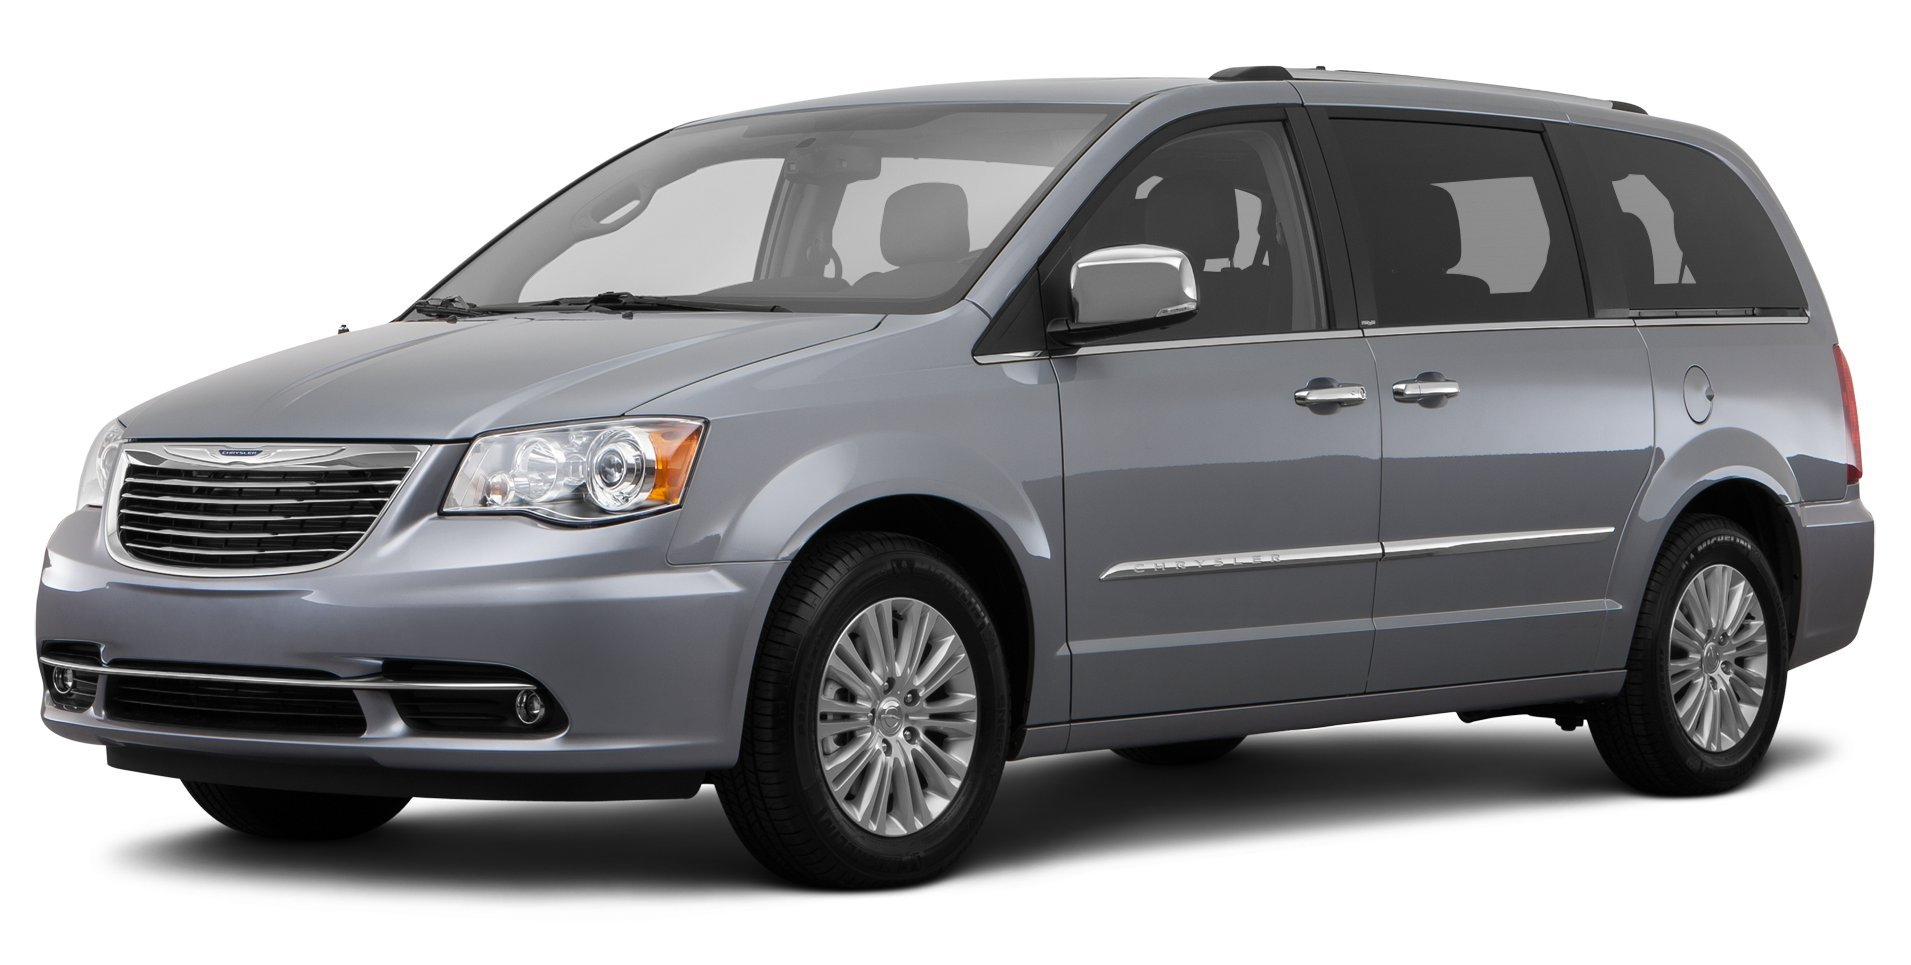 2014 Chrysler Town Country Reviews Images And Specs 1949 Hubcaps Limited 4 Door Wagon